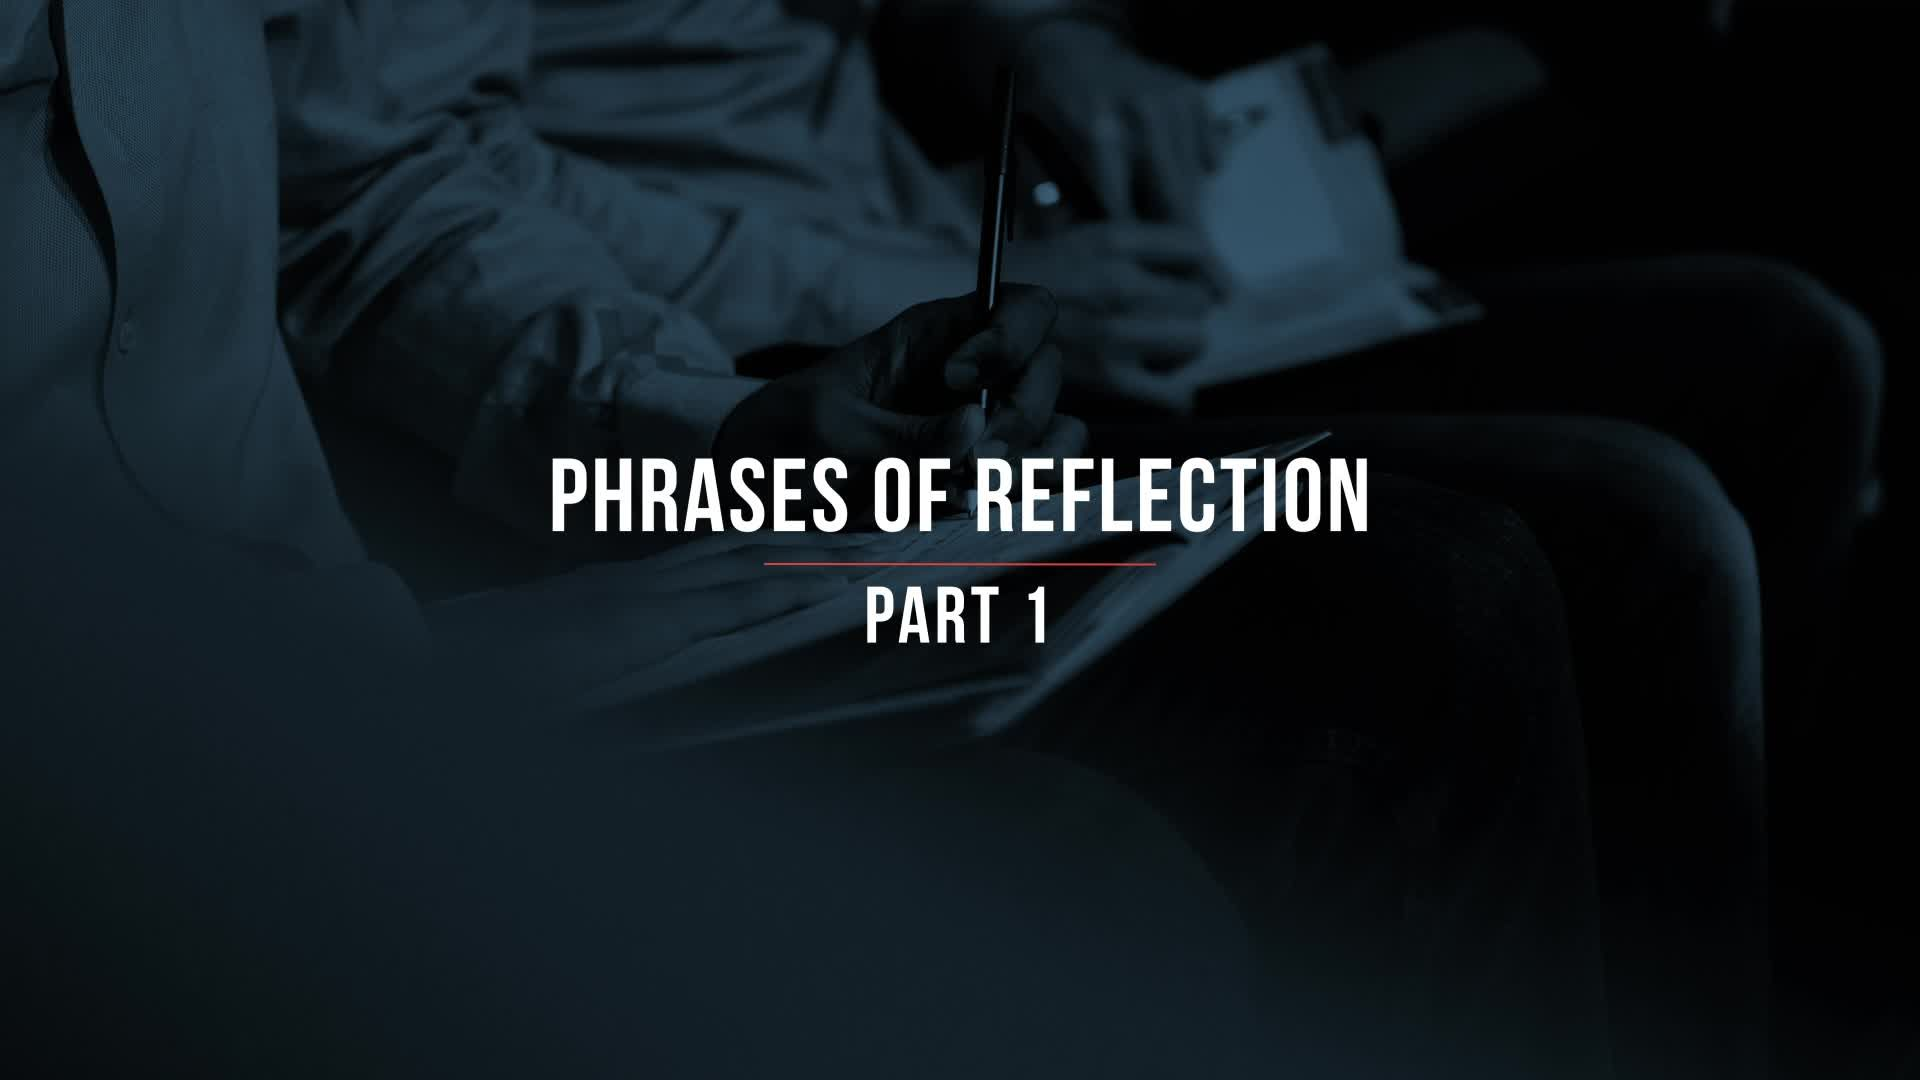 Phrases of Reflection Part 1